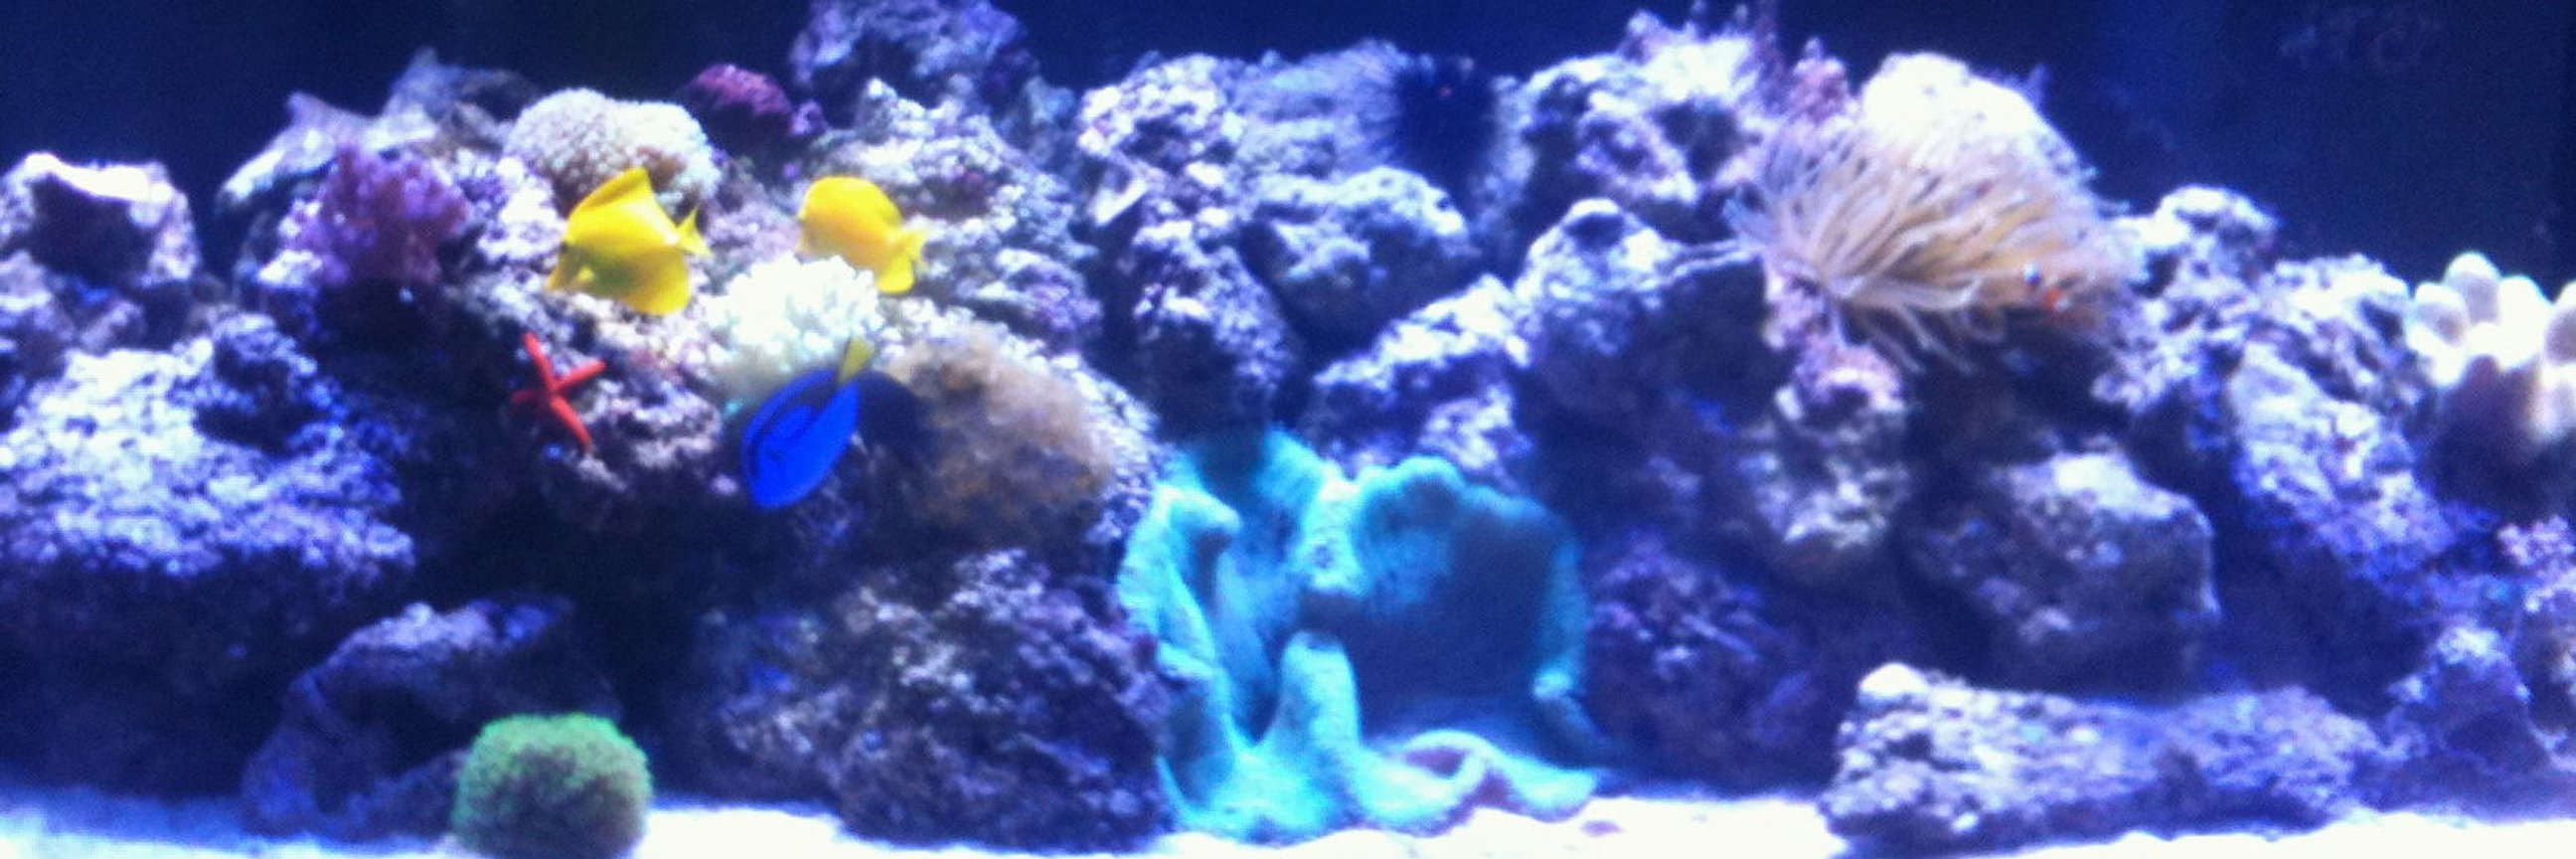 210 gallons reef tank (mostly live coral and fish) - 210 gallon reef tank